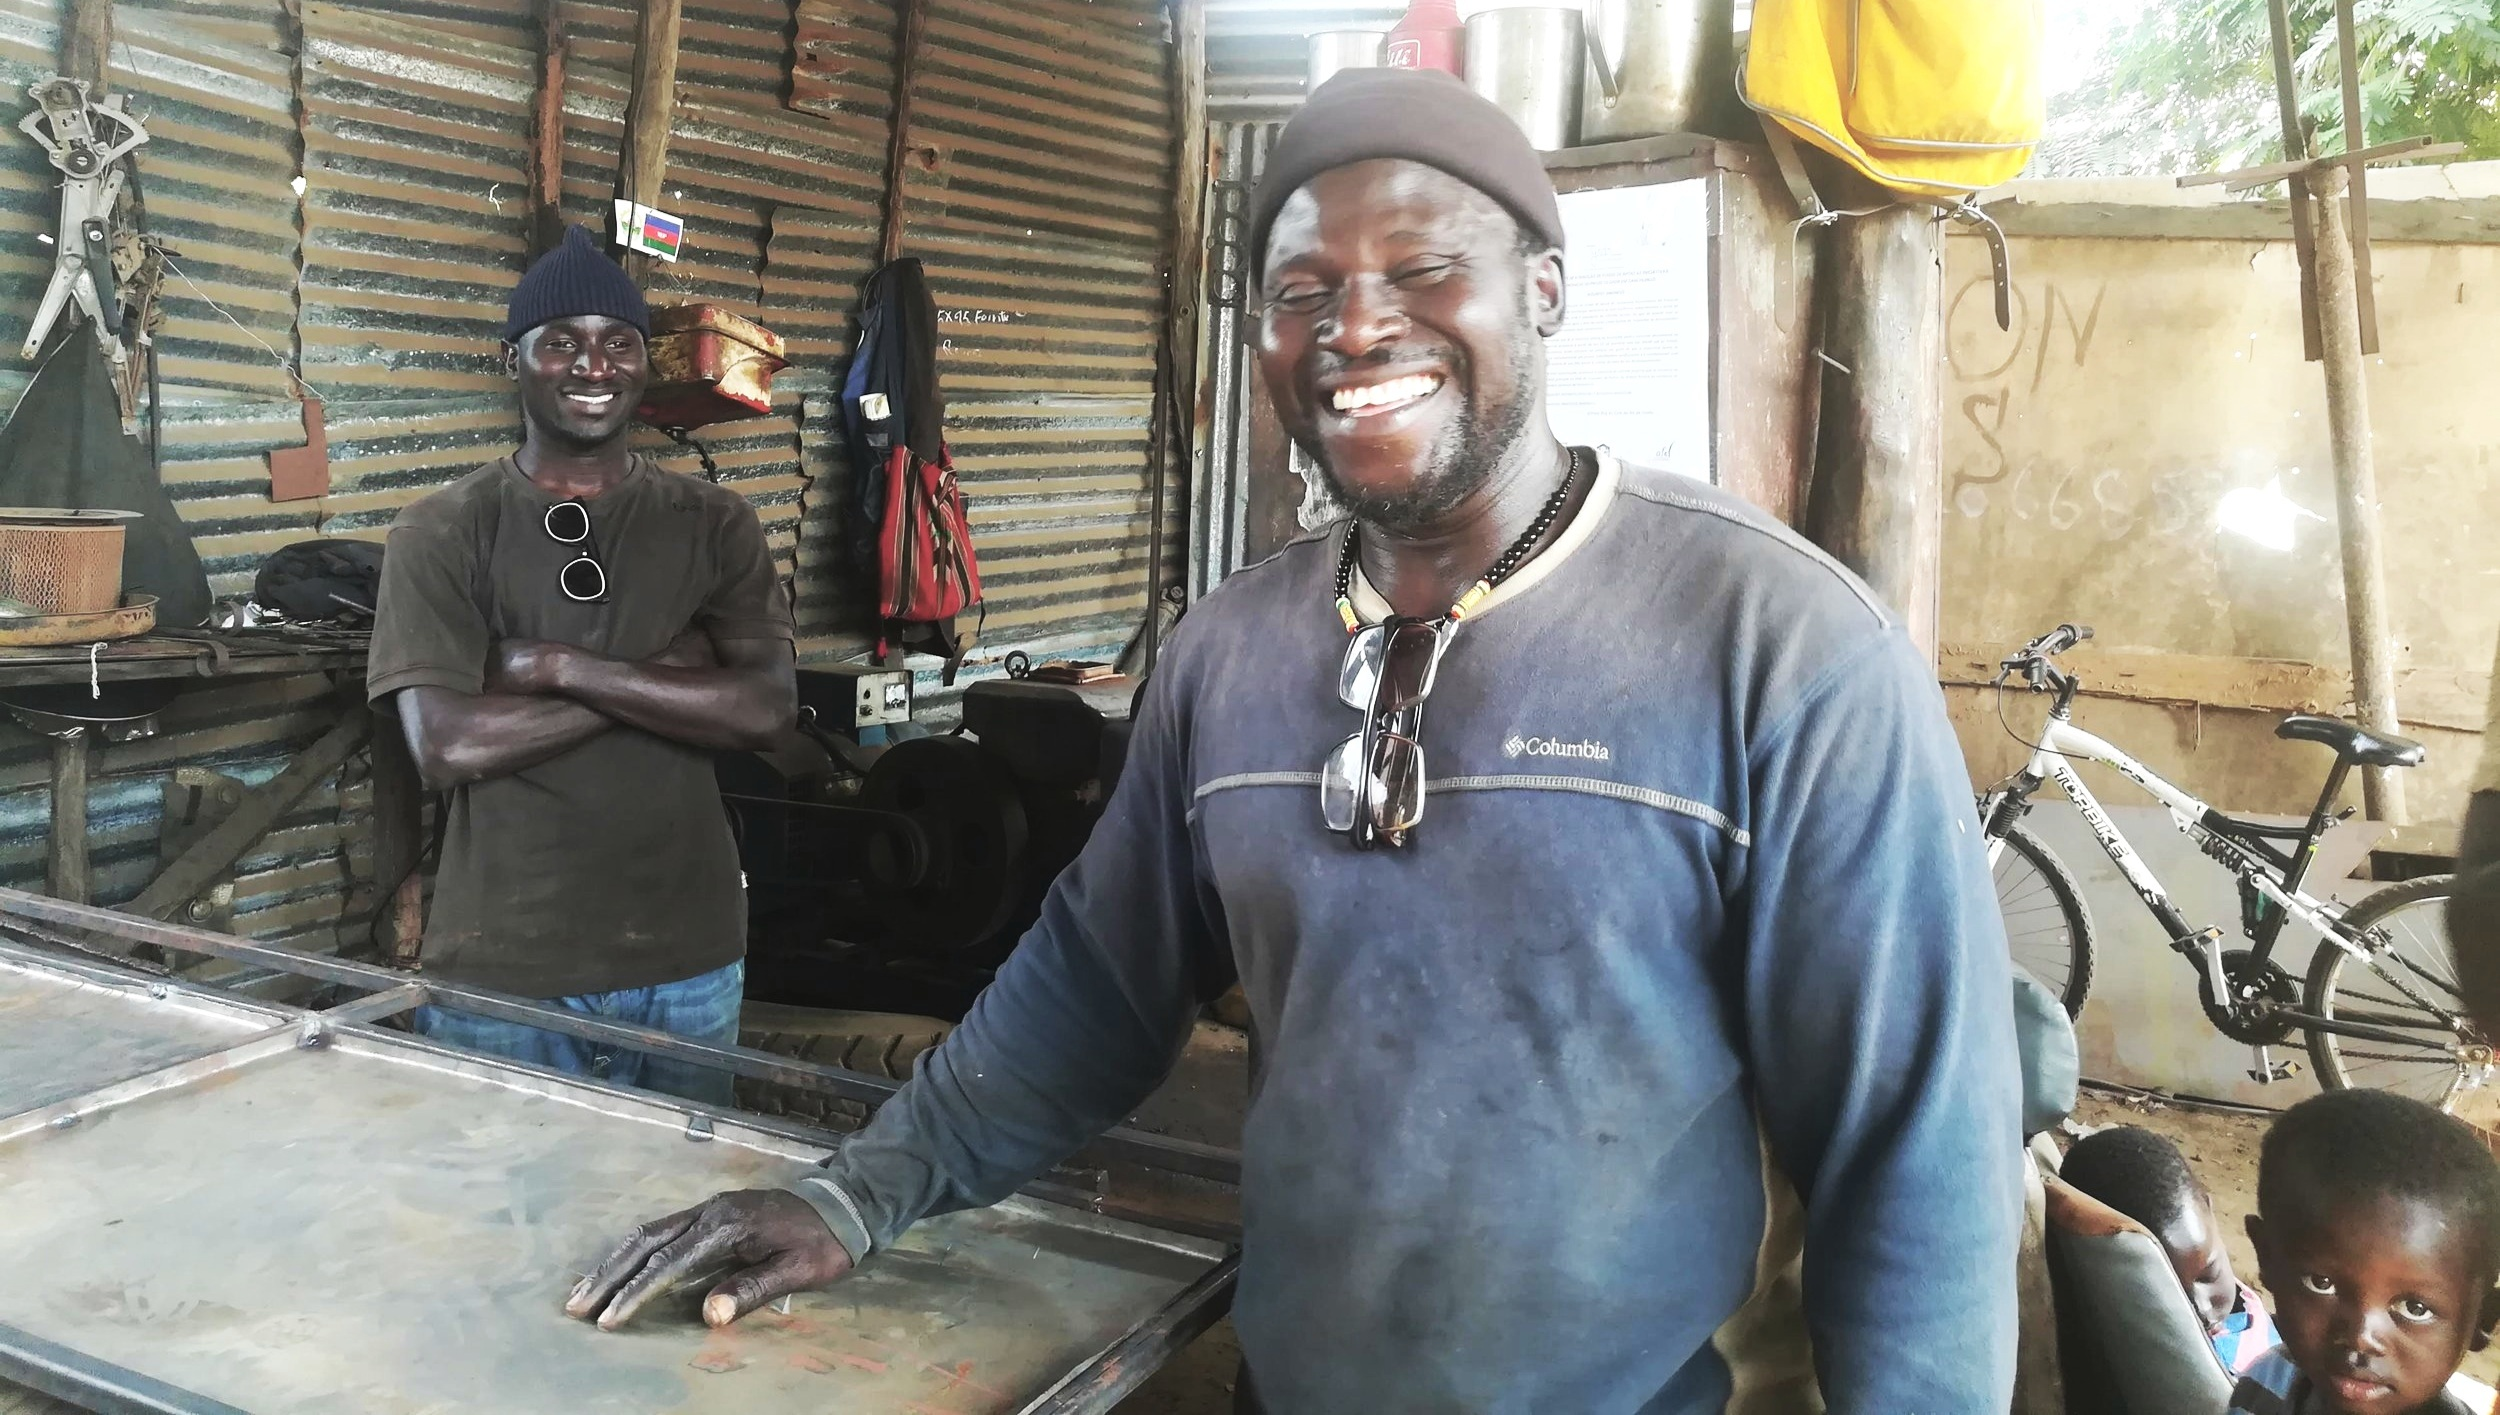 Ciro (right) and his former apprentice, Nilton (left), smile as they show off their welding workshop in West Africa. Ciro attended the WAVS Vocational School so he could grow his business and provide for four orphaned children.